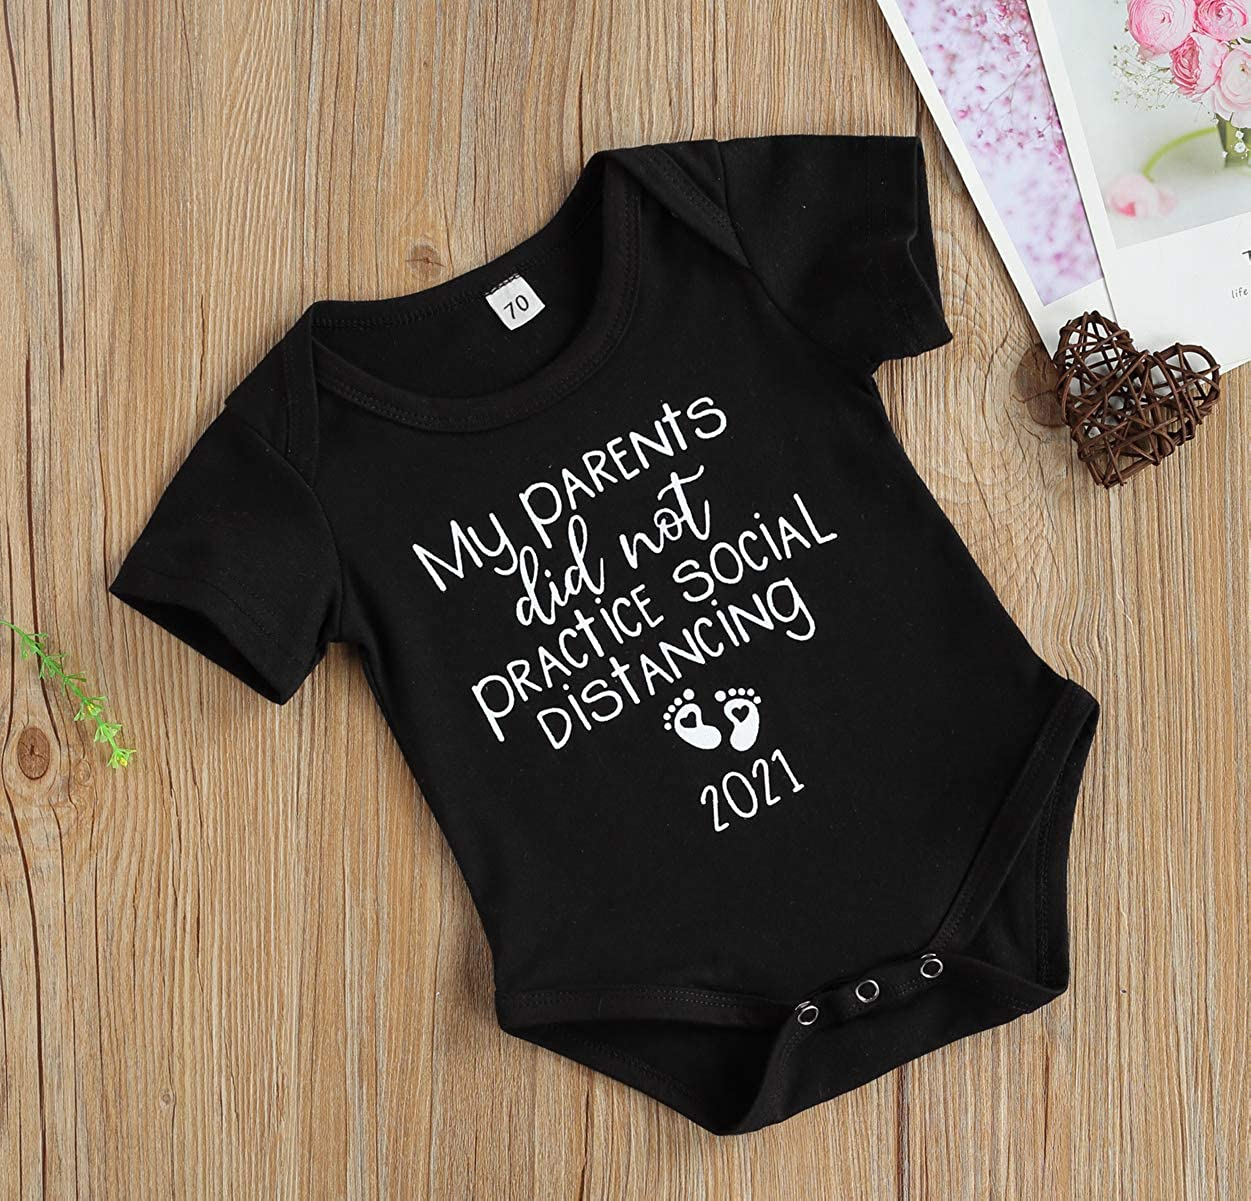 My Parents Did Not Practice Social Distancing Funny Newborn Baby Boy Girls Clothes Cotton Bodysuit